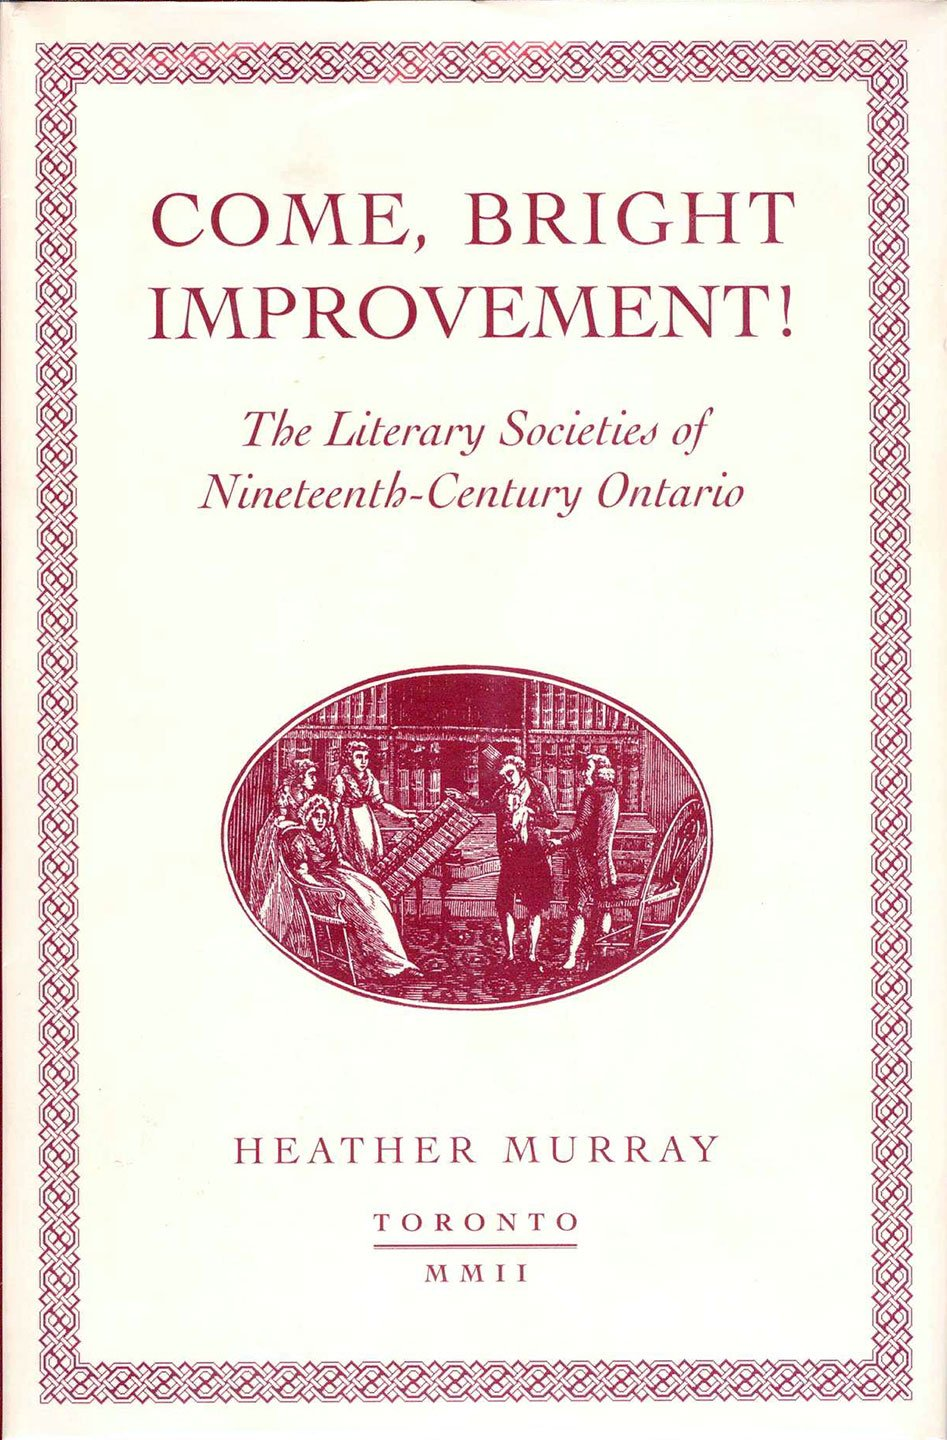 Come, Bright Improvement! The Literary Societies of Nineteenth-Century Ontario